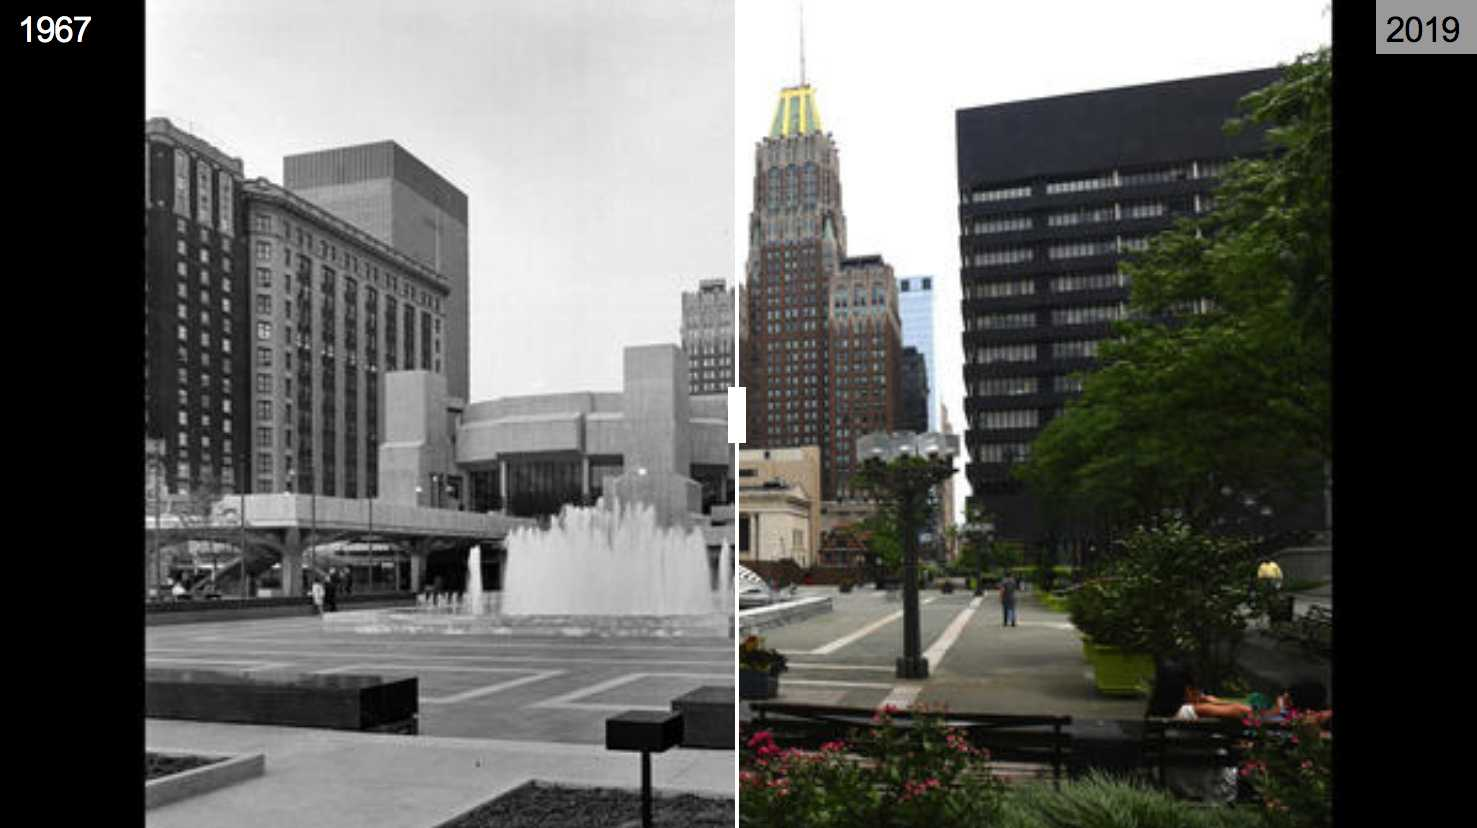 Then and now photos: Hopkins Plaza